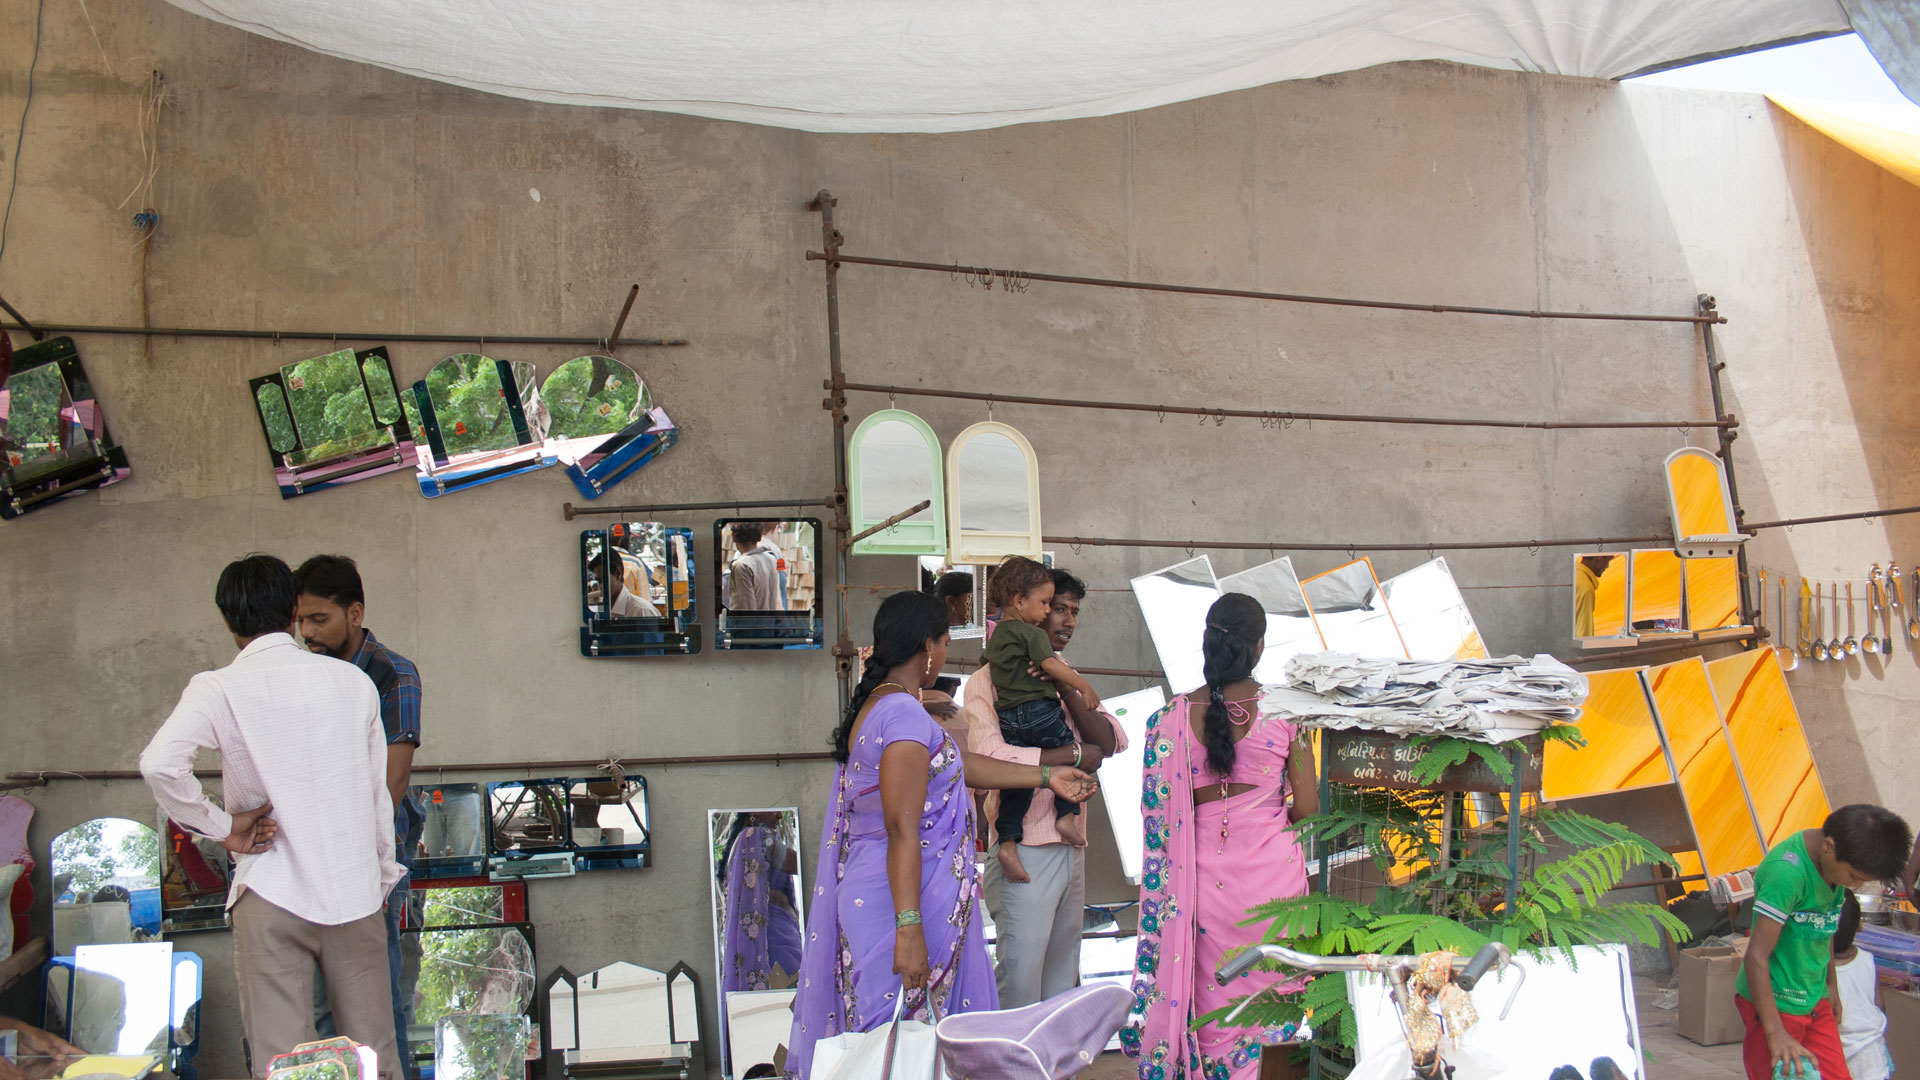 Mirrors for sale at the Ravivari Market, one of the best places for street shopping in Ahmedabad